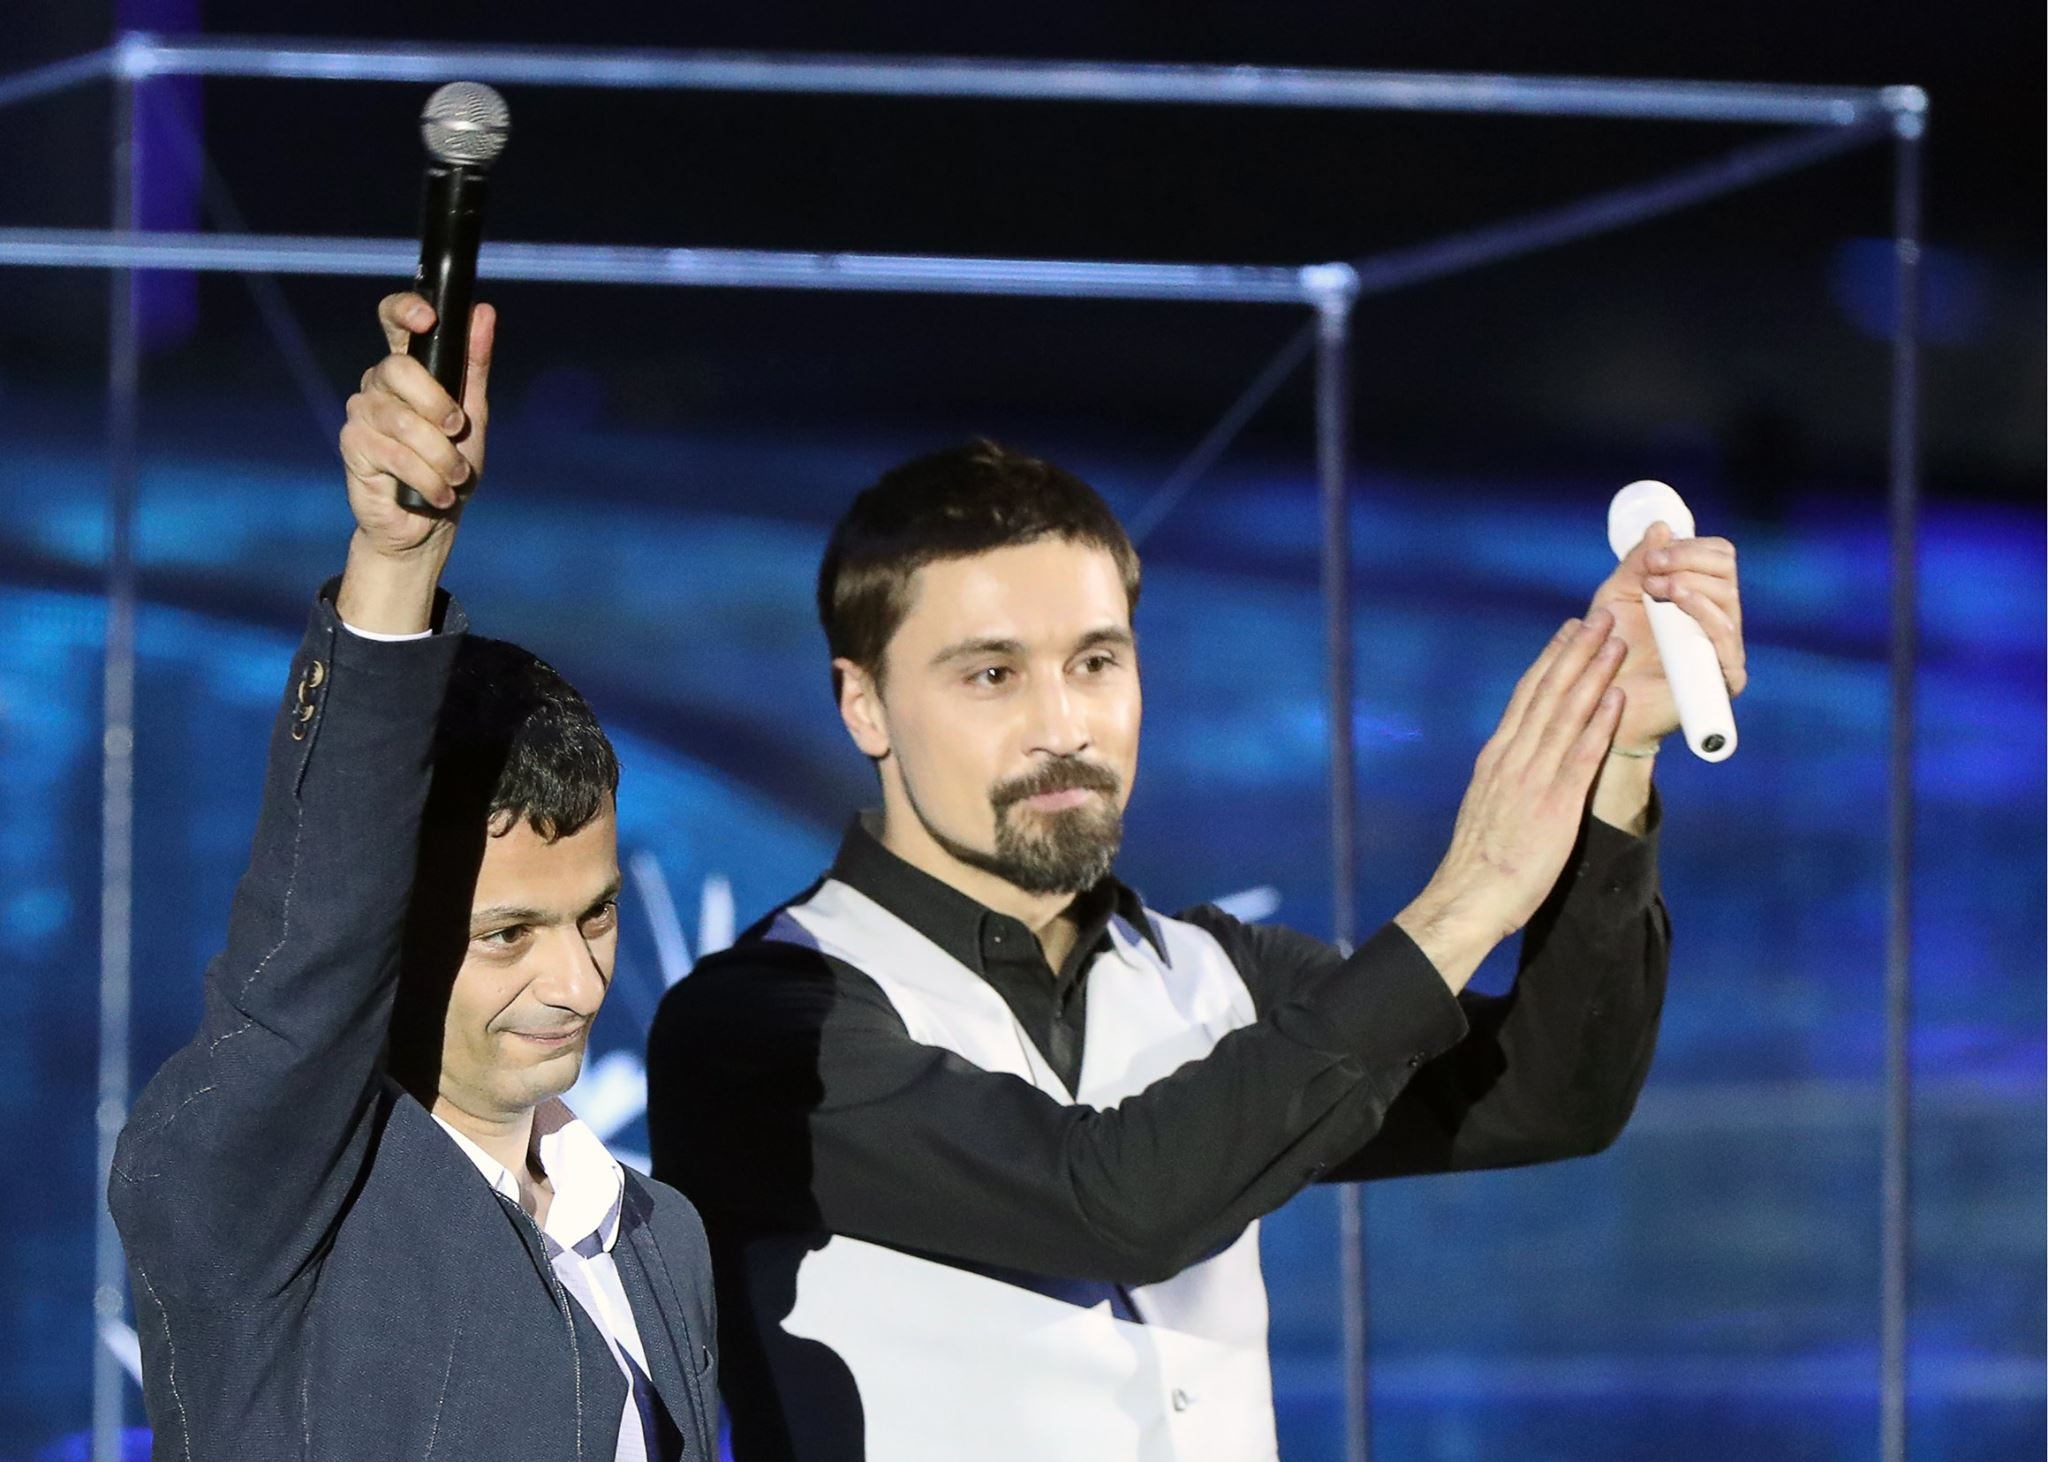 Professor Artem Oganov (left) waves to the audience alongside popstart Dima Bilan during the opening ceremony of the World Festival of Youth and Students in Sochi. Photo: Francesca Nesterenko // Facebook.